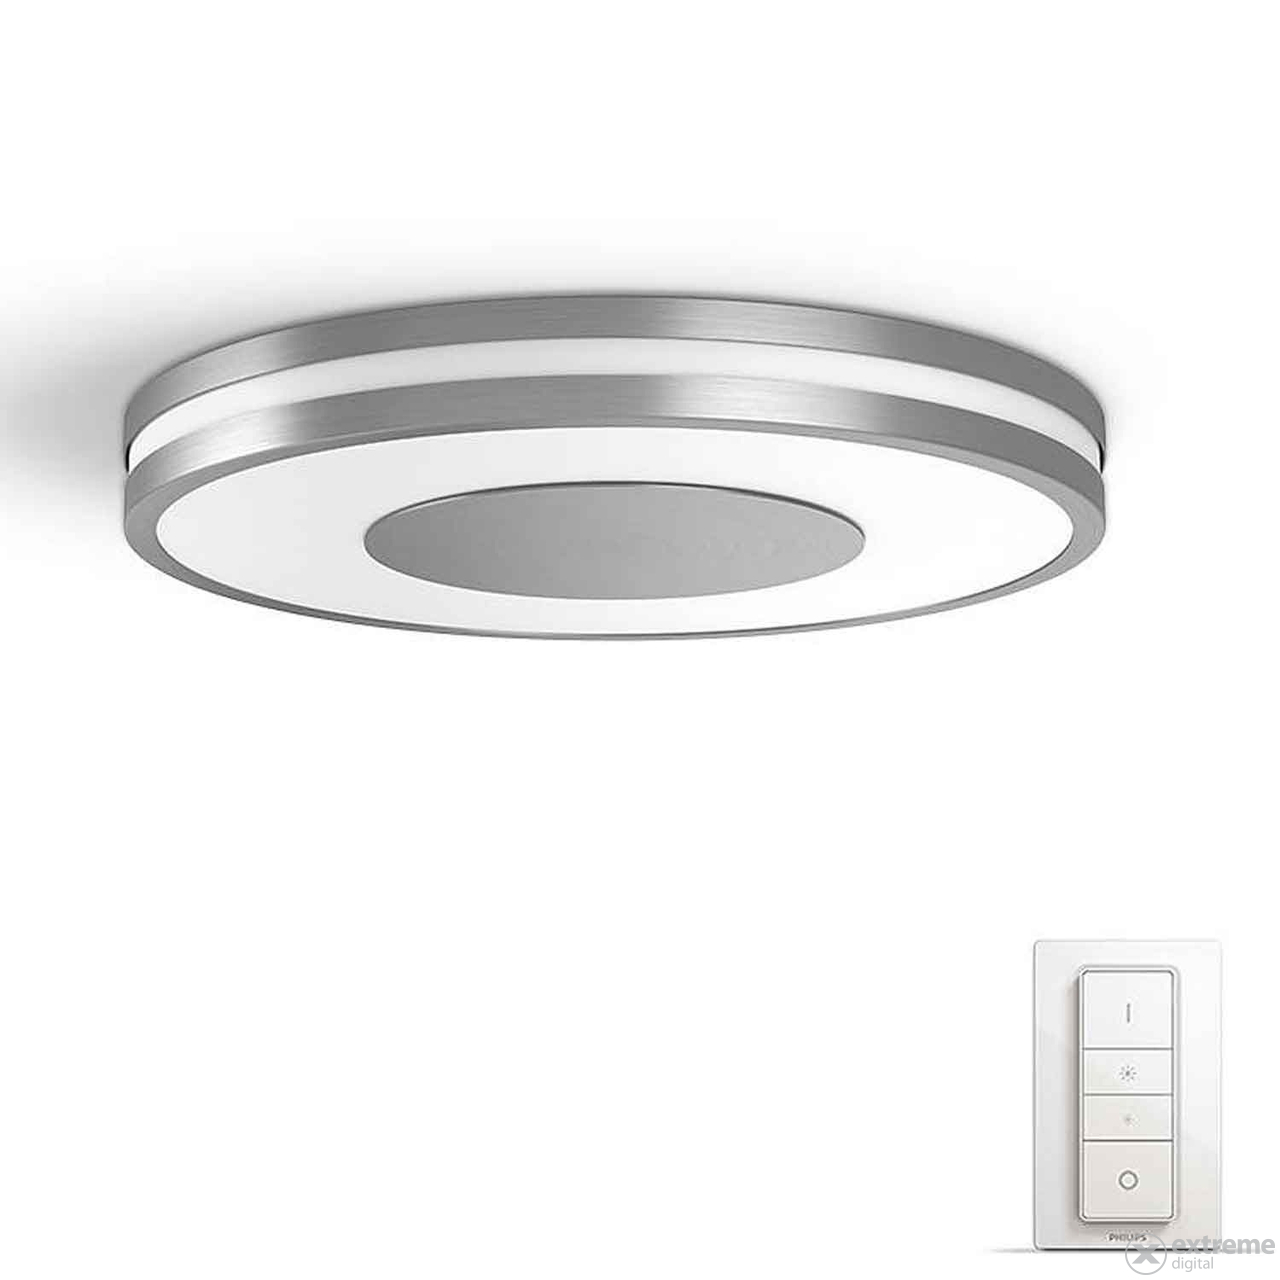 Philips Being Hue Ceiling Lamp Aluminium 1x32w Hue Being